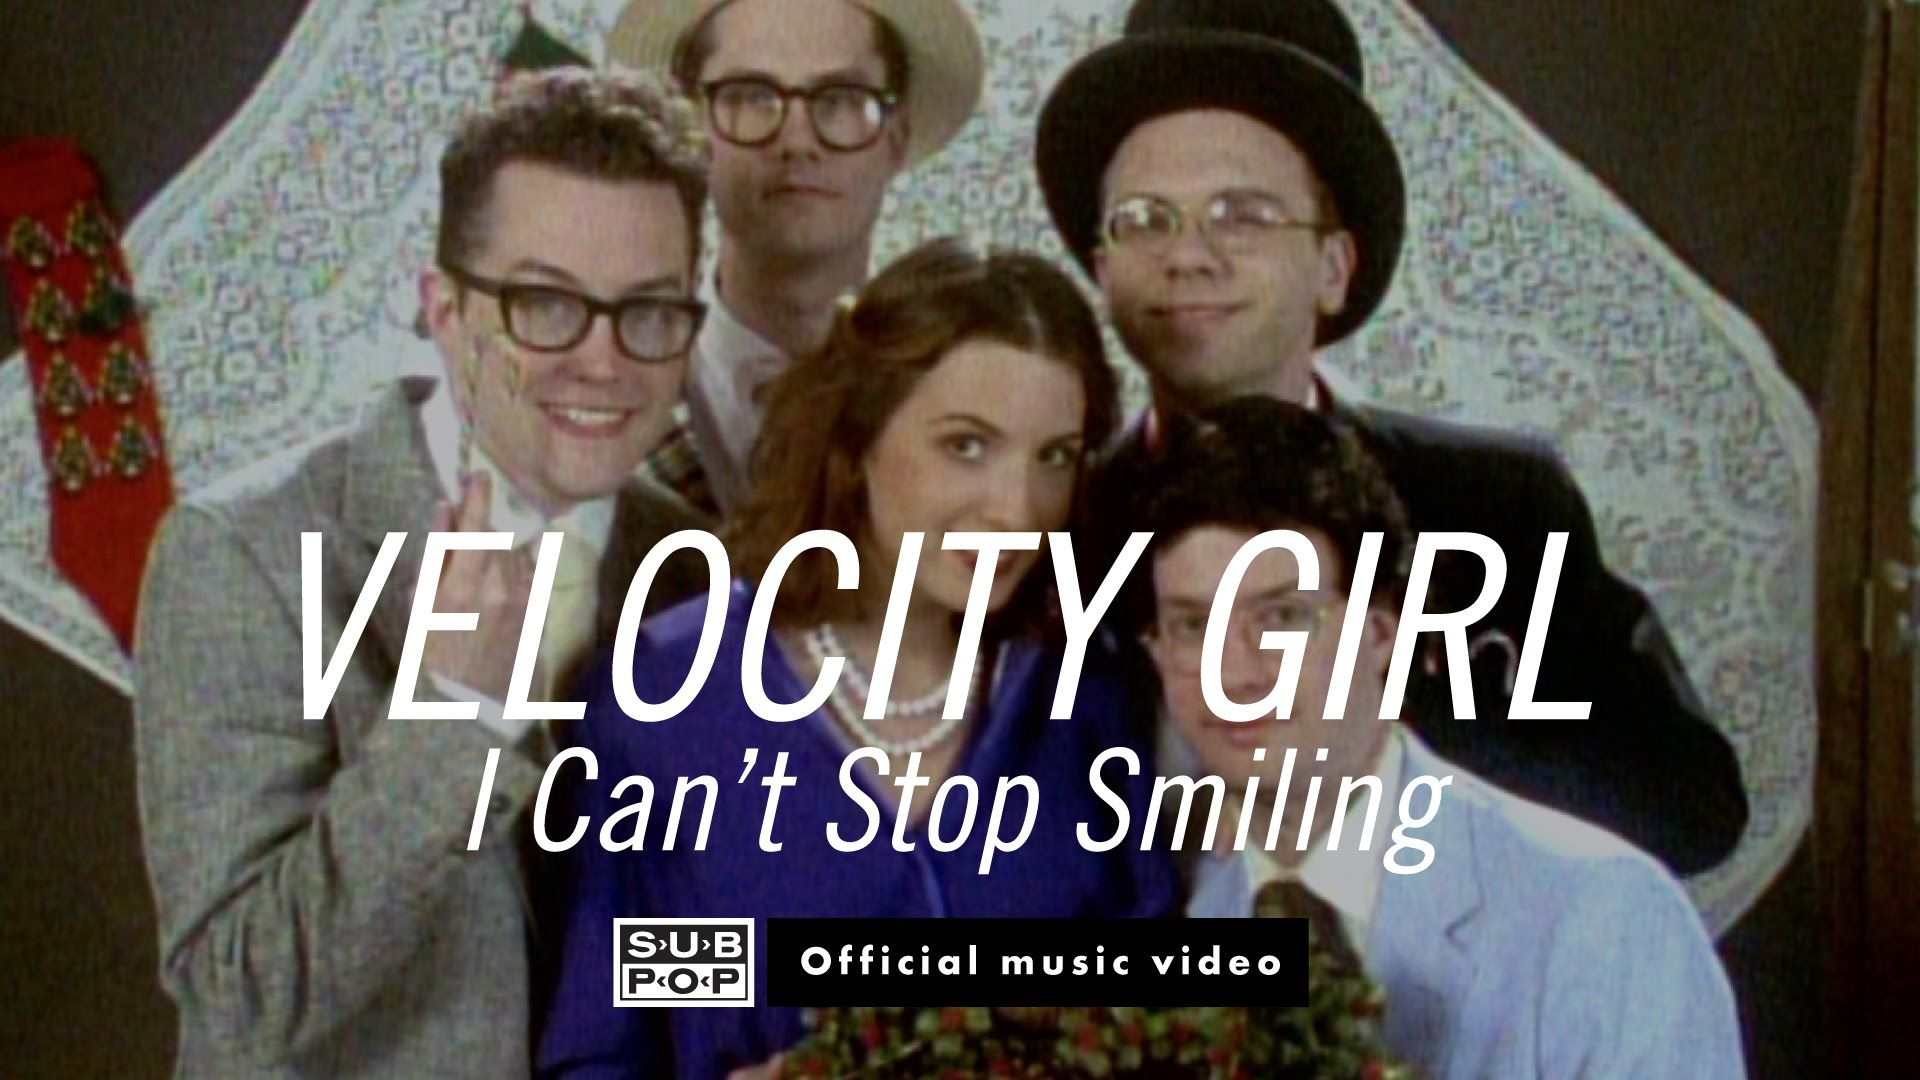 Velocity Girl - I Can't Stop Smiling [OFFICIAL VIDEO ...